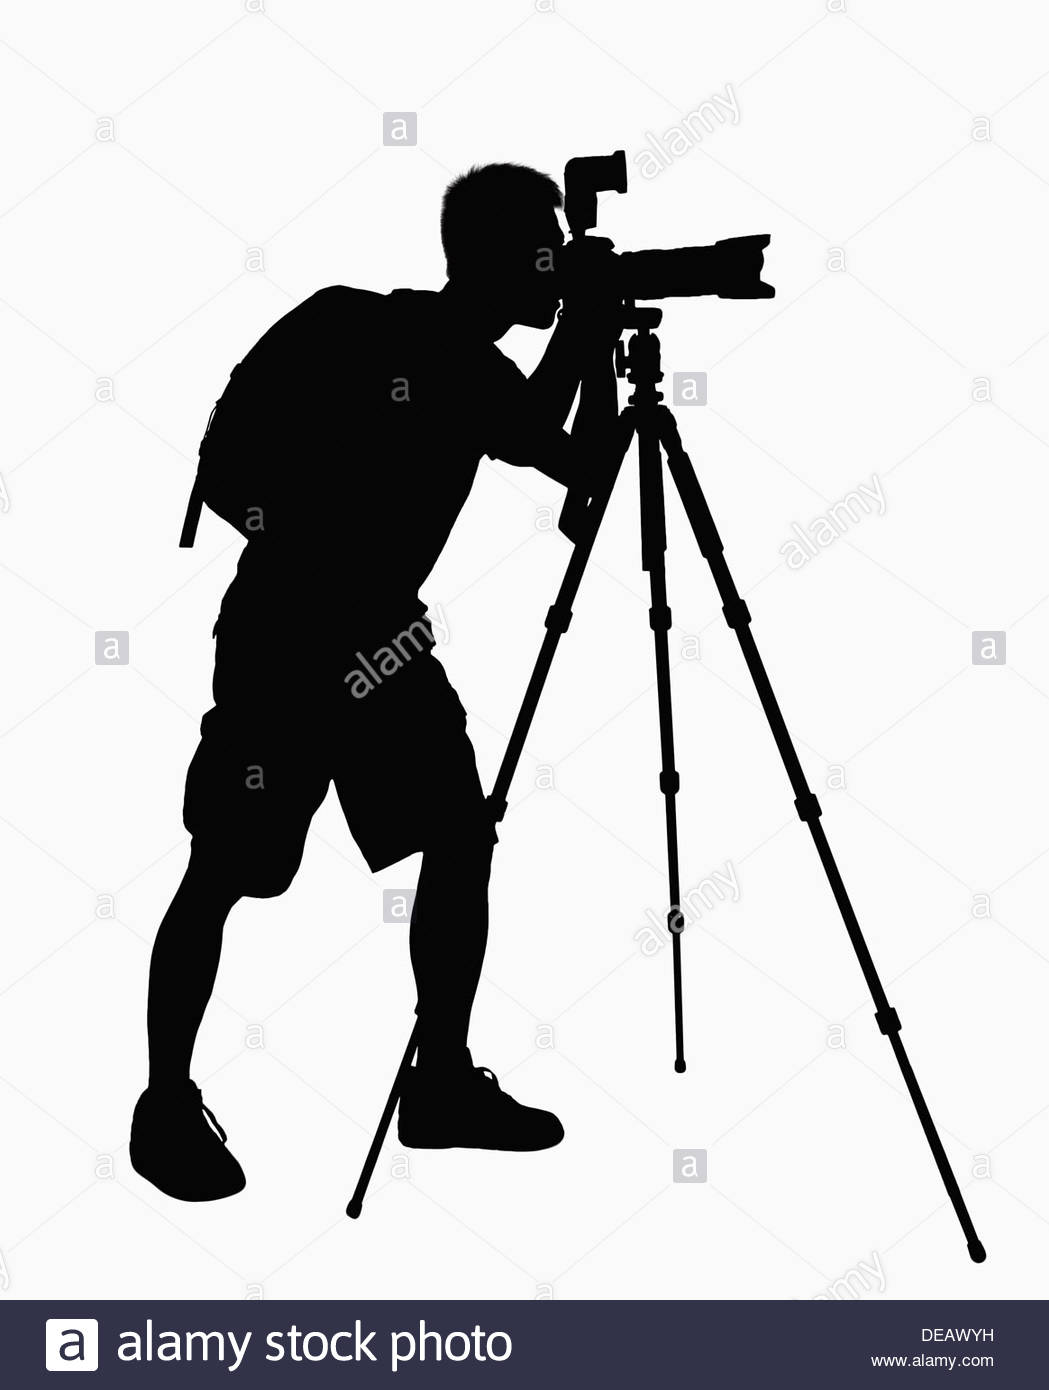 1049x1390 Silhouette Of Man Taking Pictures With Camera On Tripod Stock